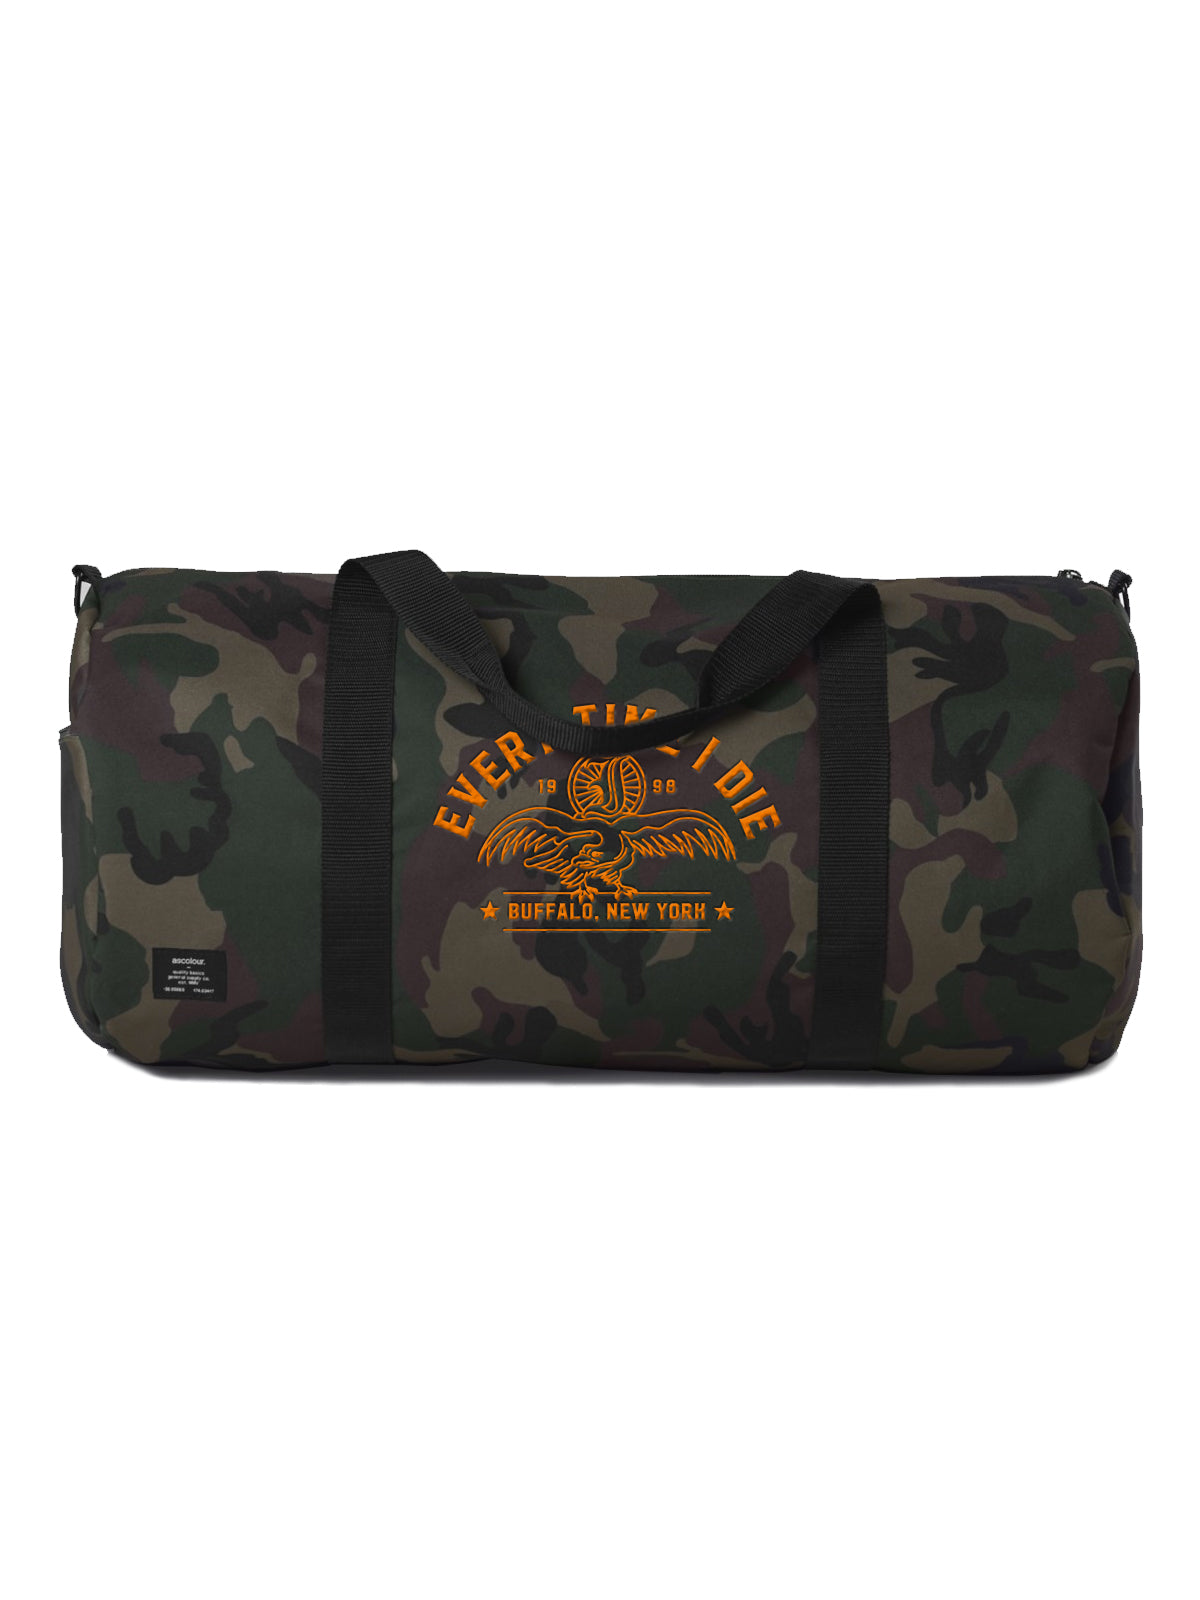 Every Time I Die - Camo Duffle Bag - Merch Limited